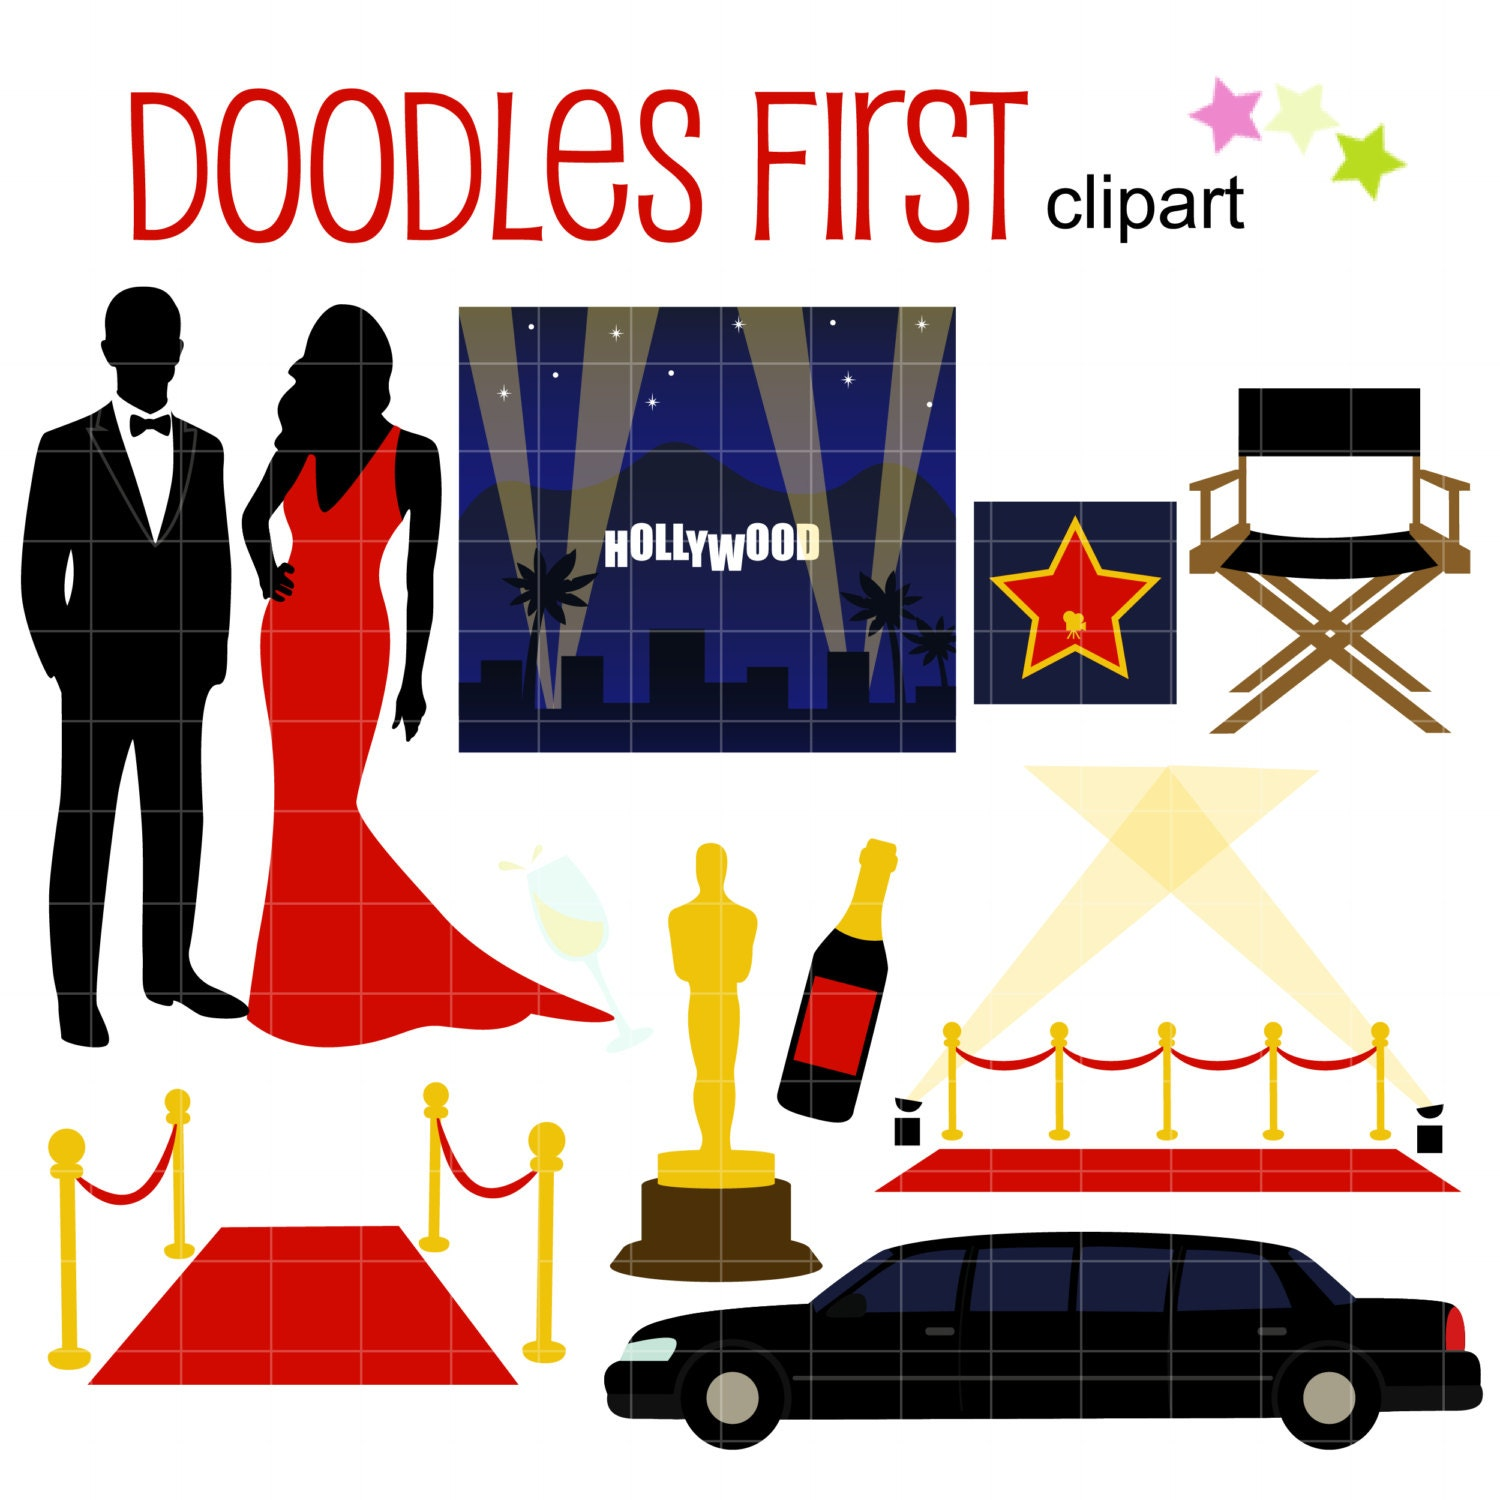 hollywood awards night gala digital clip art for scrapbooking rh etsy com sci-fi hollywood studios clip art hollywood clip art borders